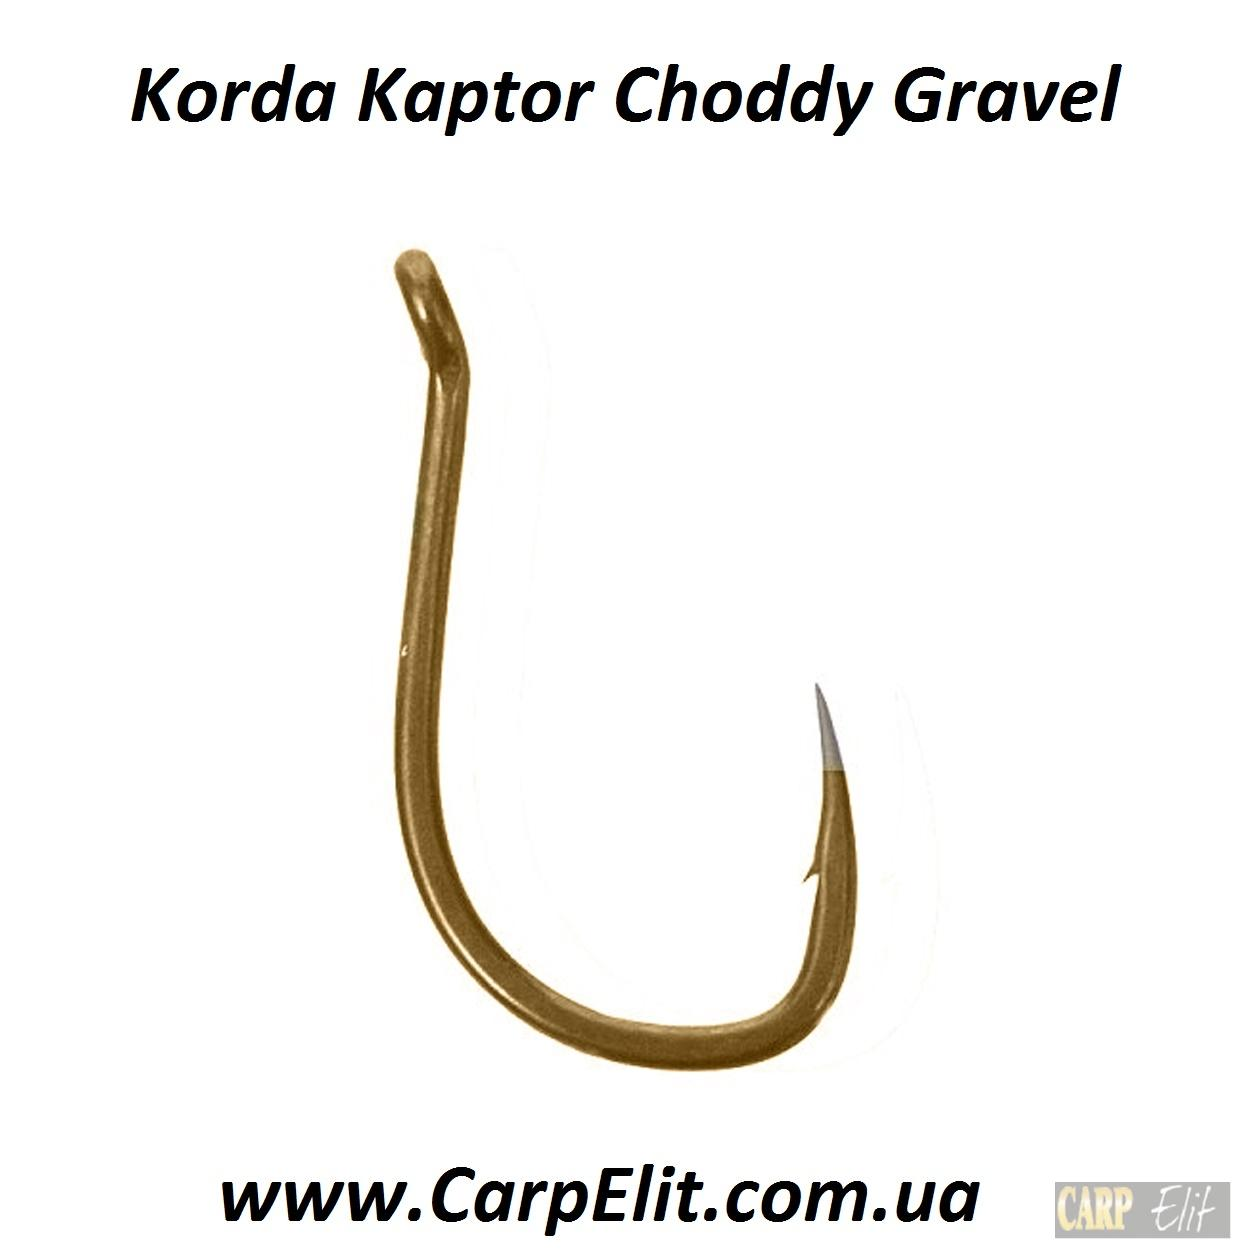 Korda Крючок Kaptor Choddy Gravel